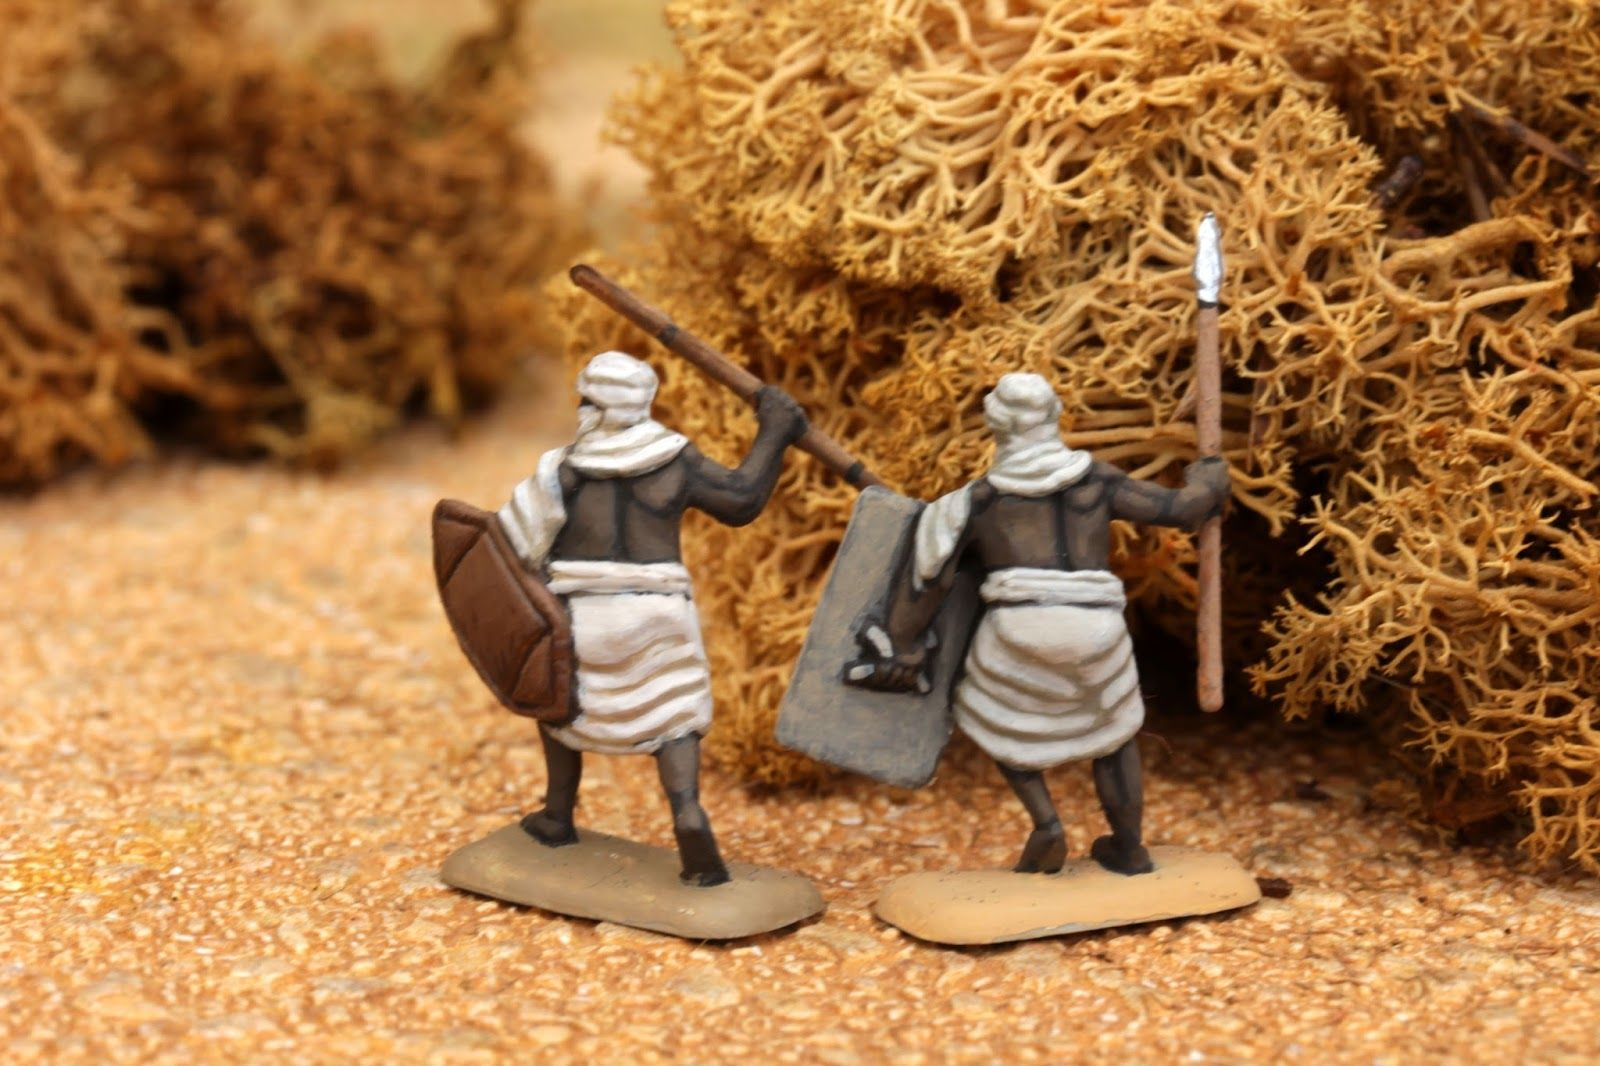 Almoravid Warriors, 1/72 Hät minis - minis figurines figures 20mm 1/72 medieval painting plastic toy soldier miniatures Philotep